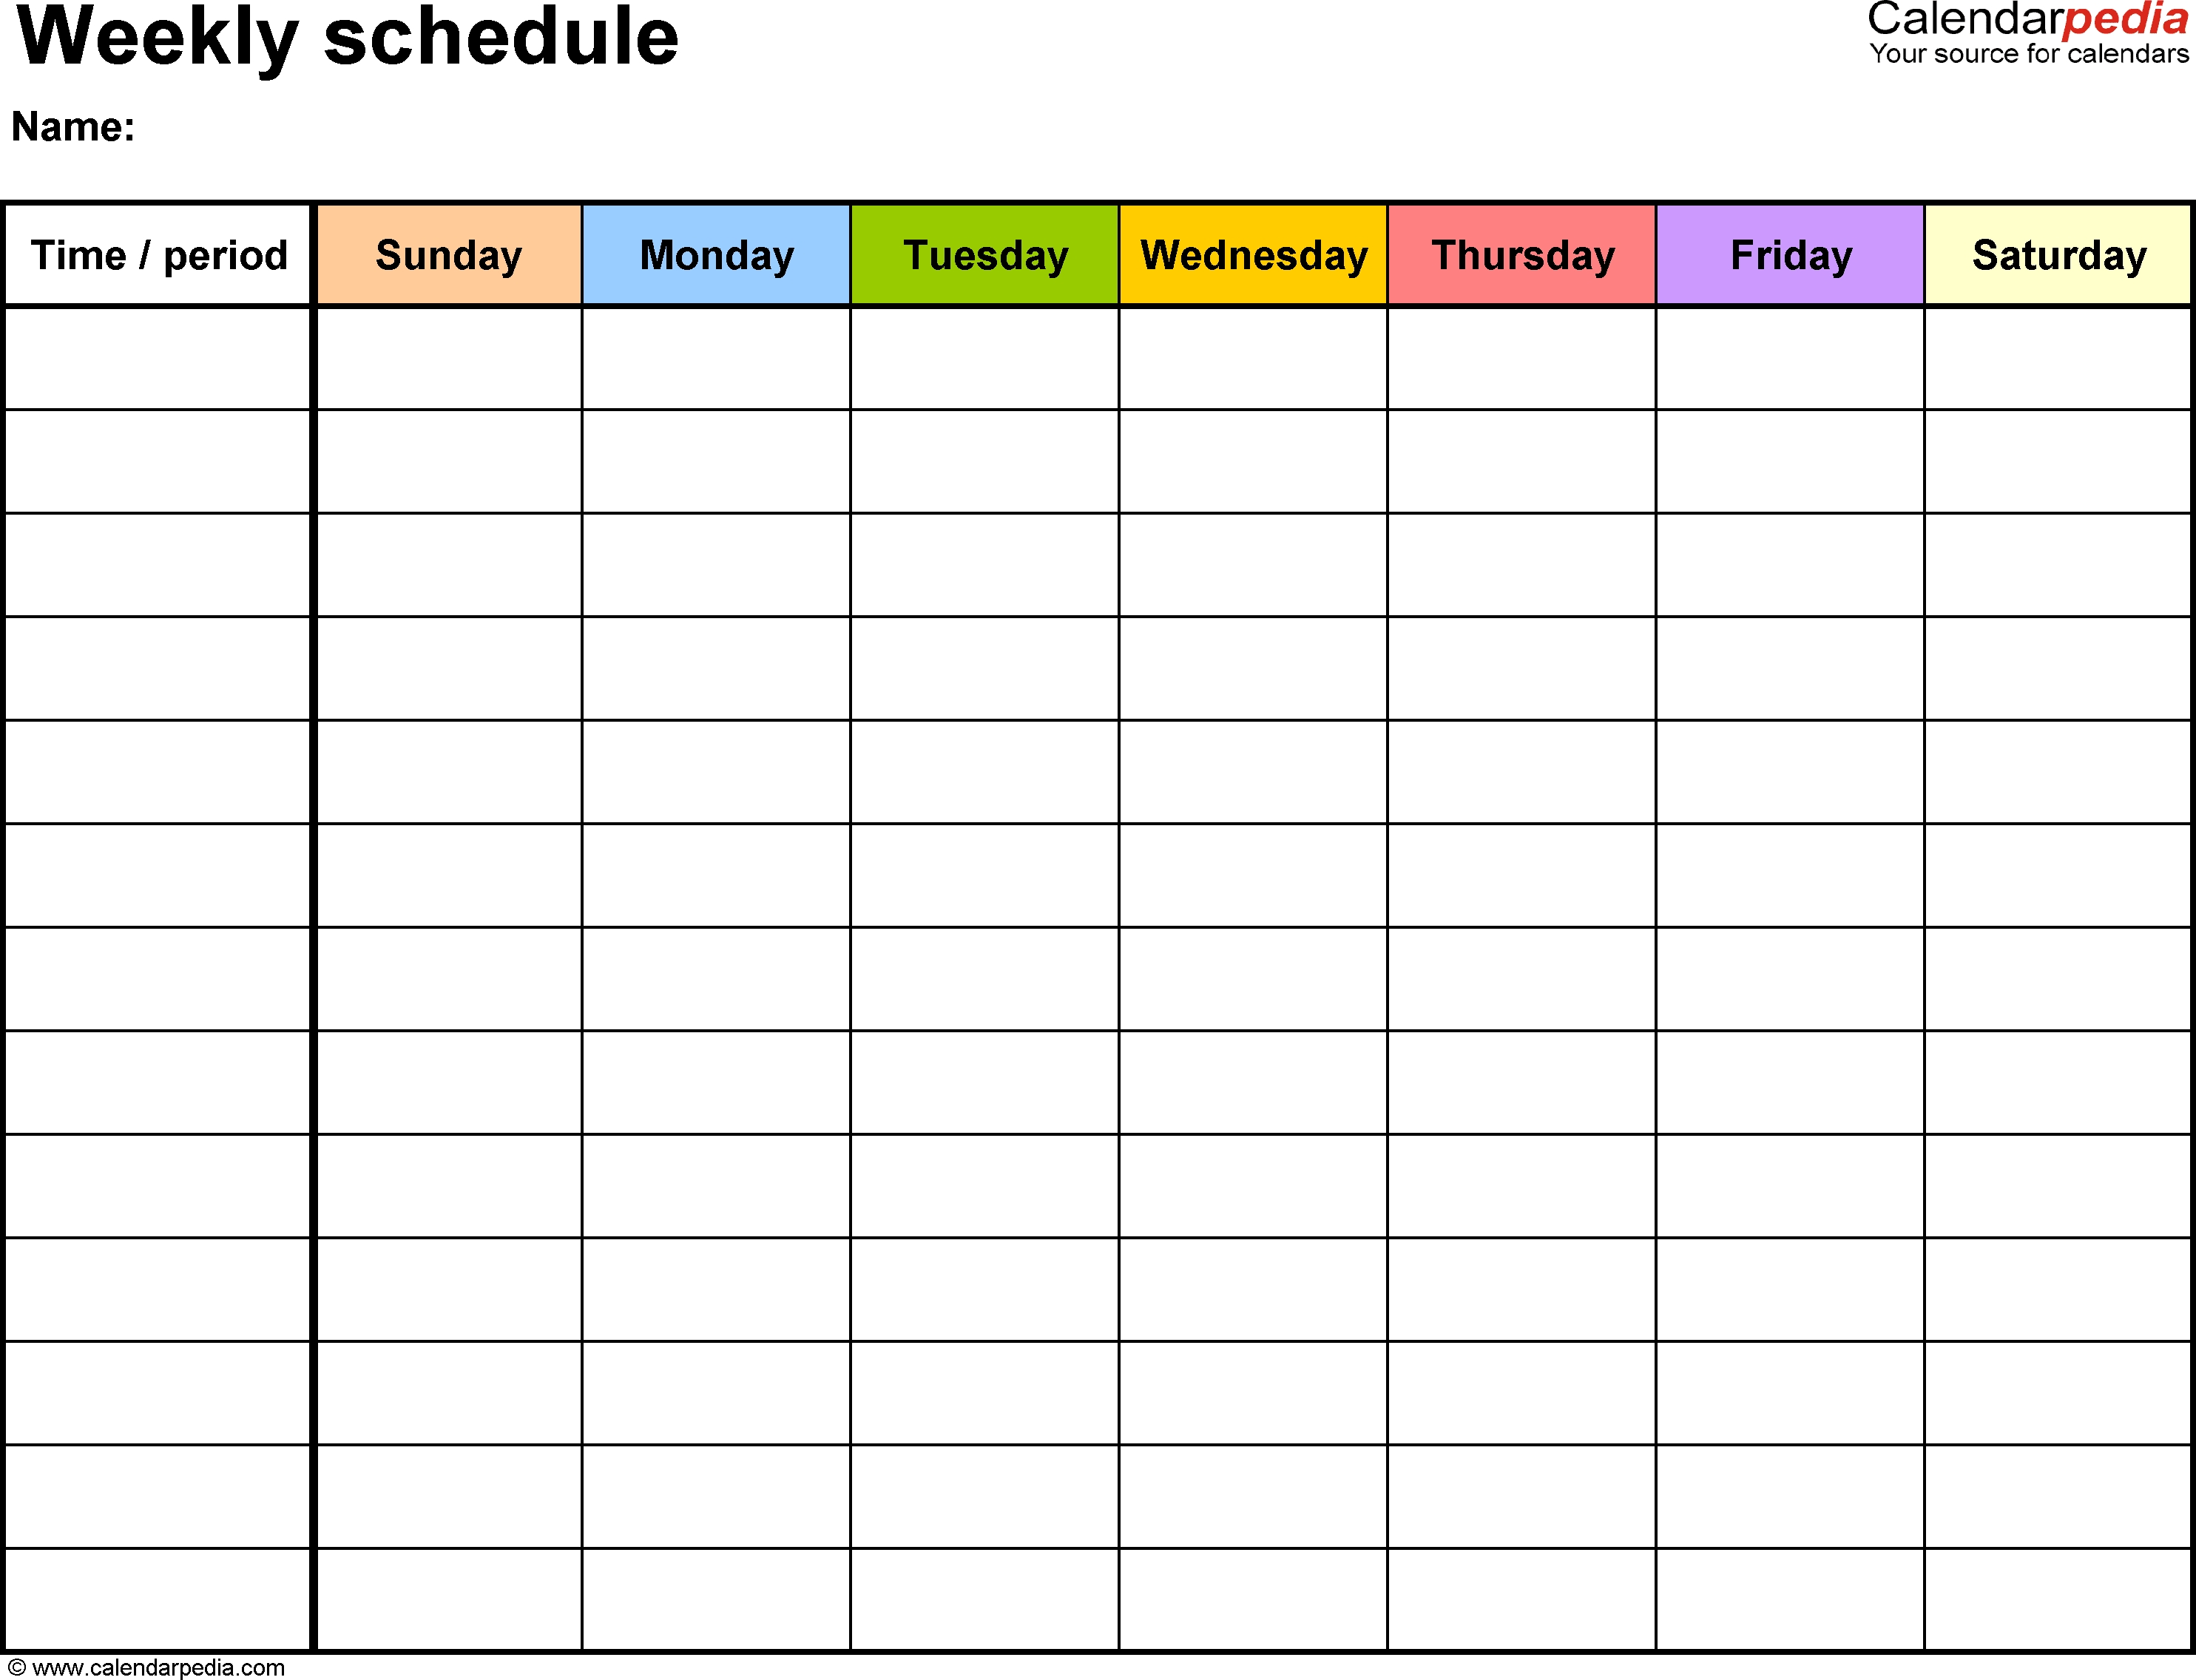 Free Weekly Schedule Templates For Excel - 18 Templates-Build A Saturday To Friday Monthly Calendar